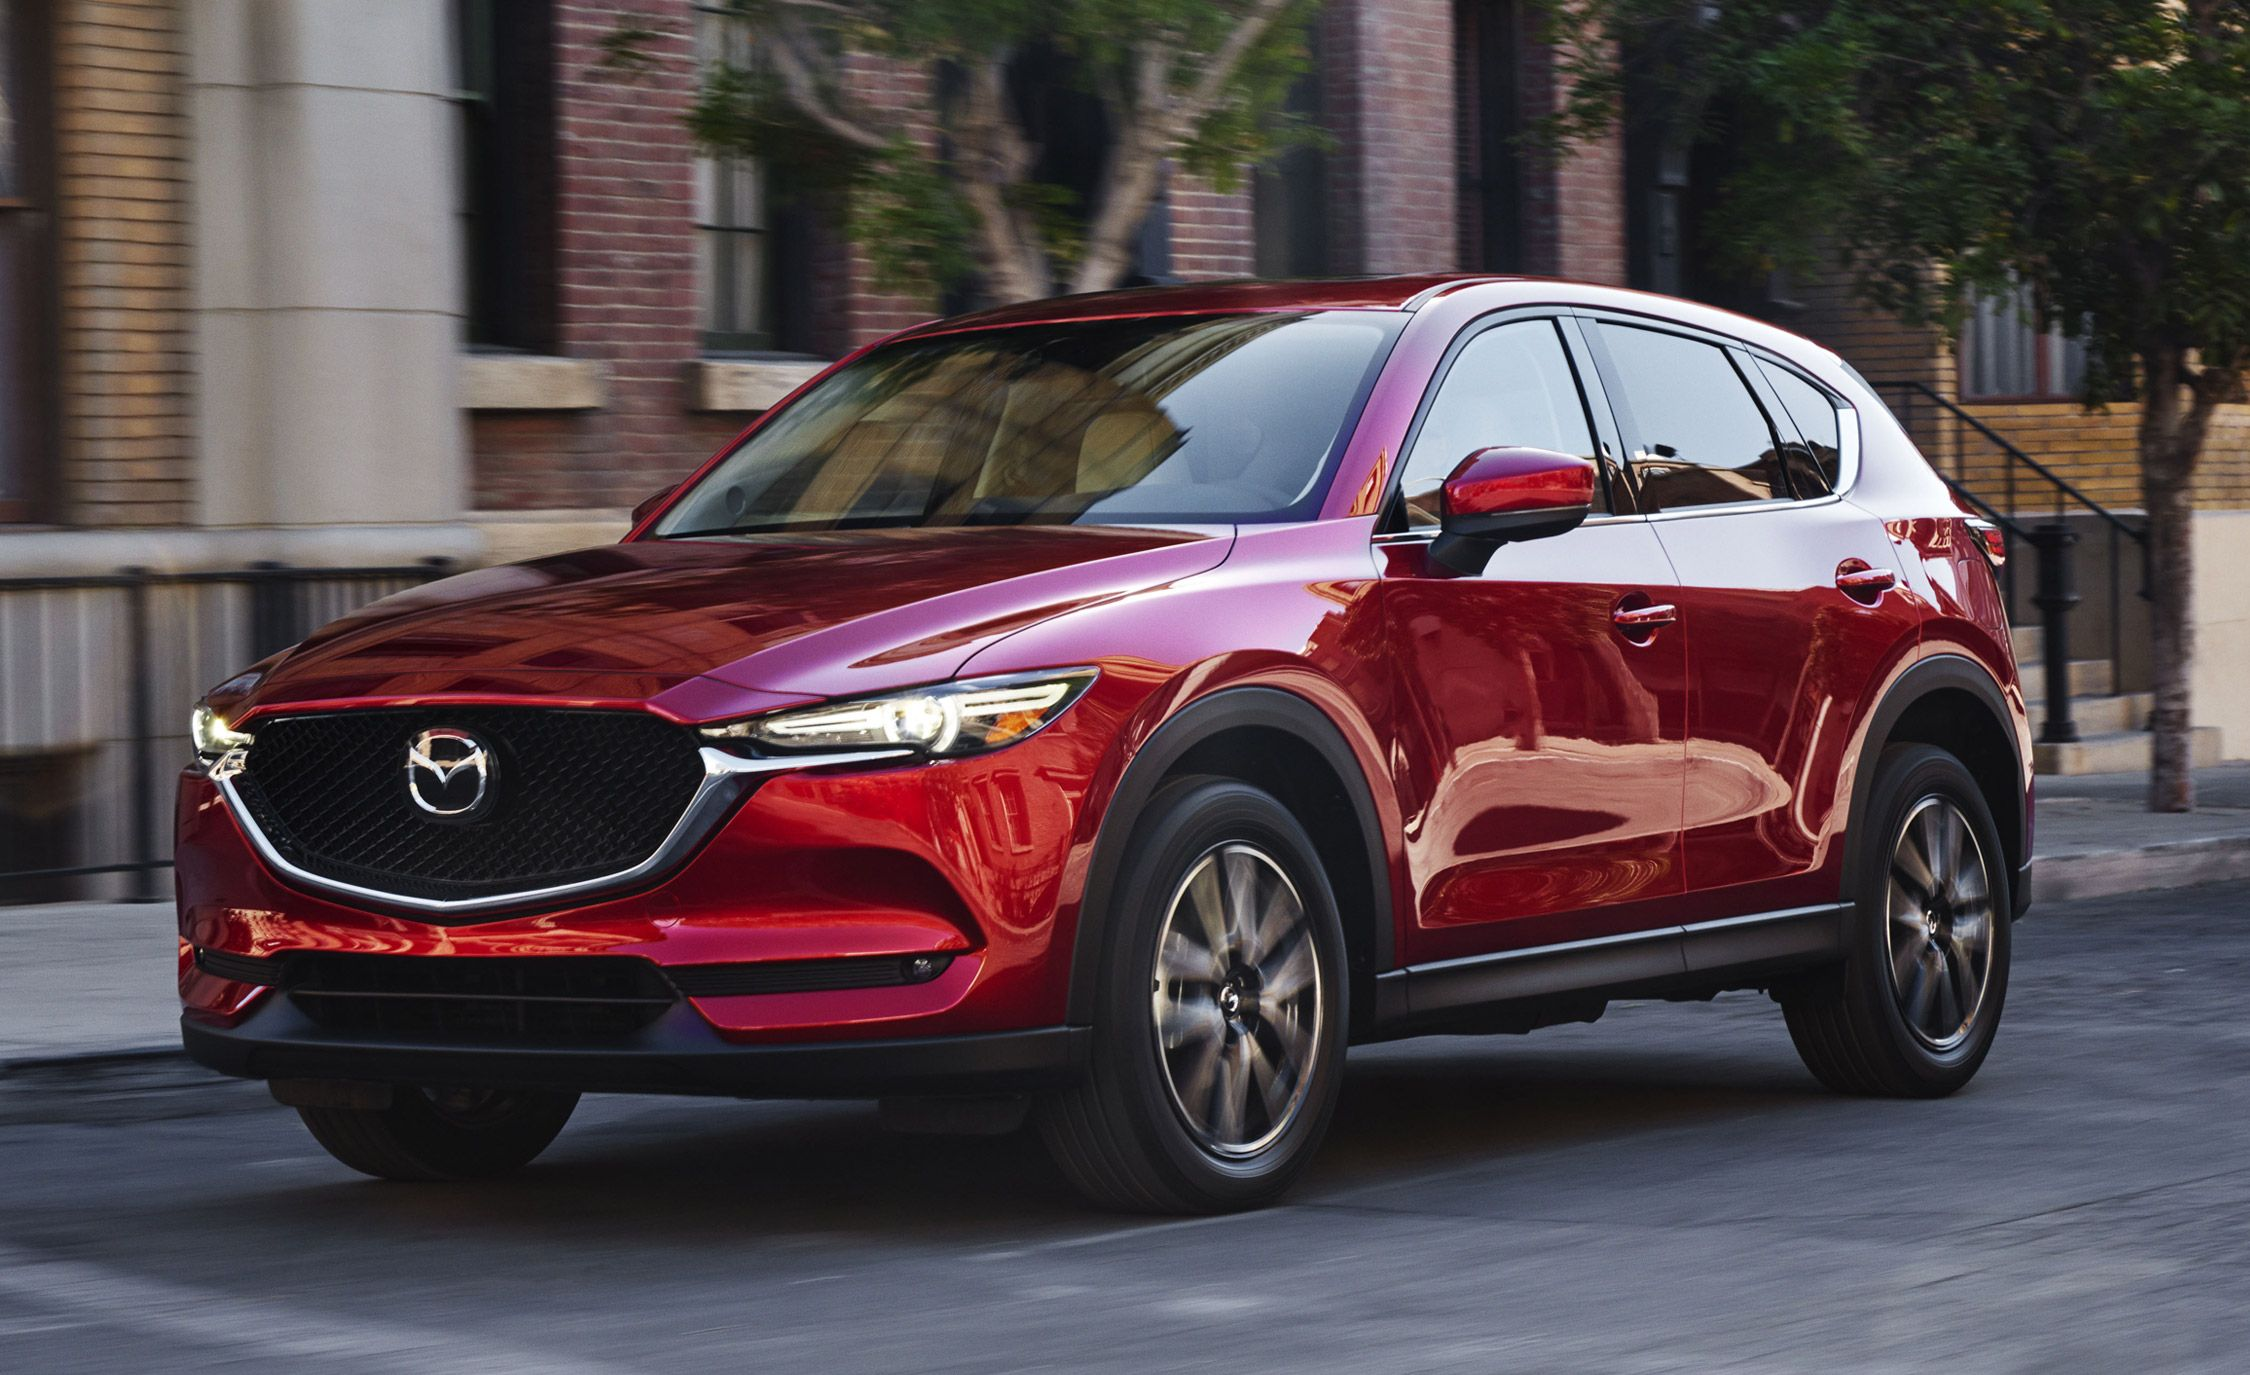 Mazda CX 5 Reviews | Mazda CX 5 Price, Photos, And Specs | Car And Driver